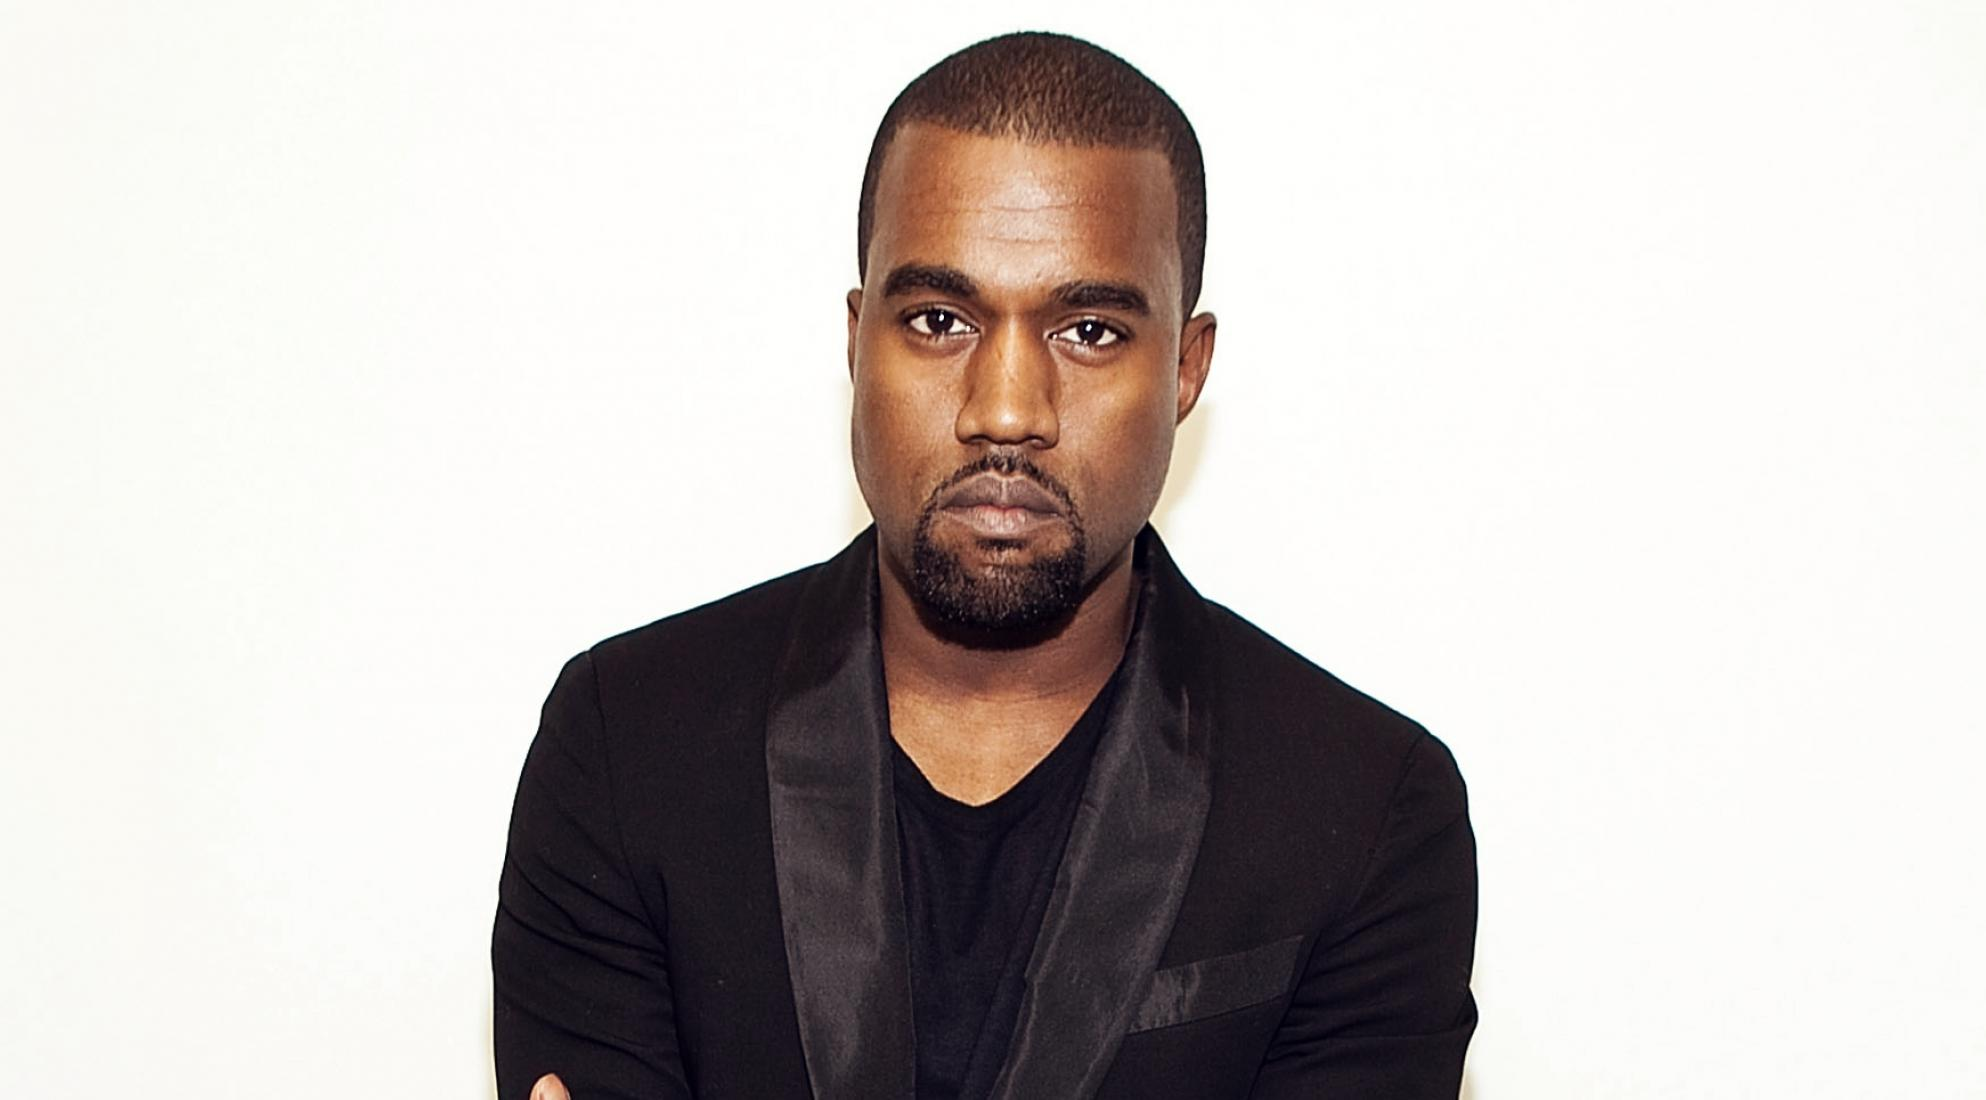 Kanye West Changed his name to Ye